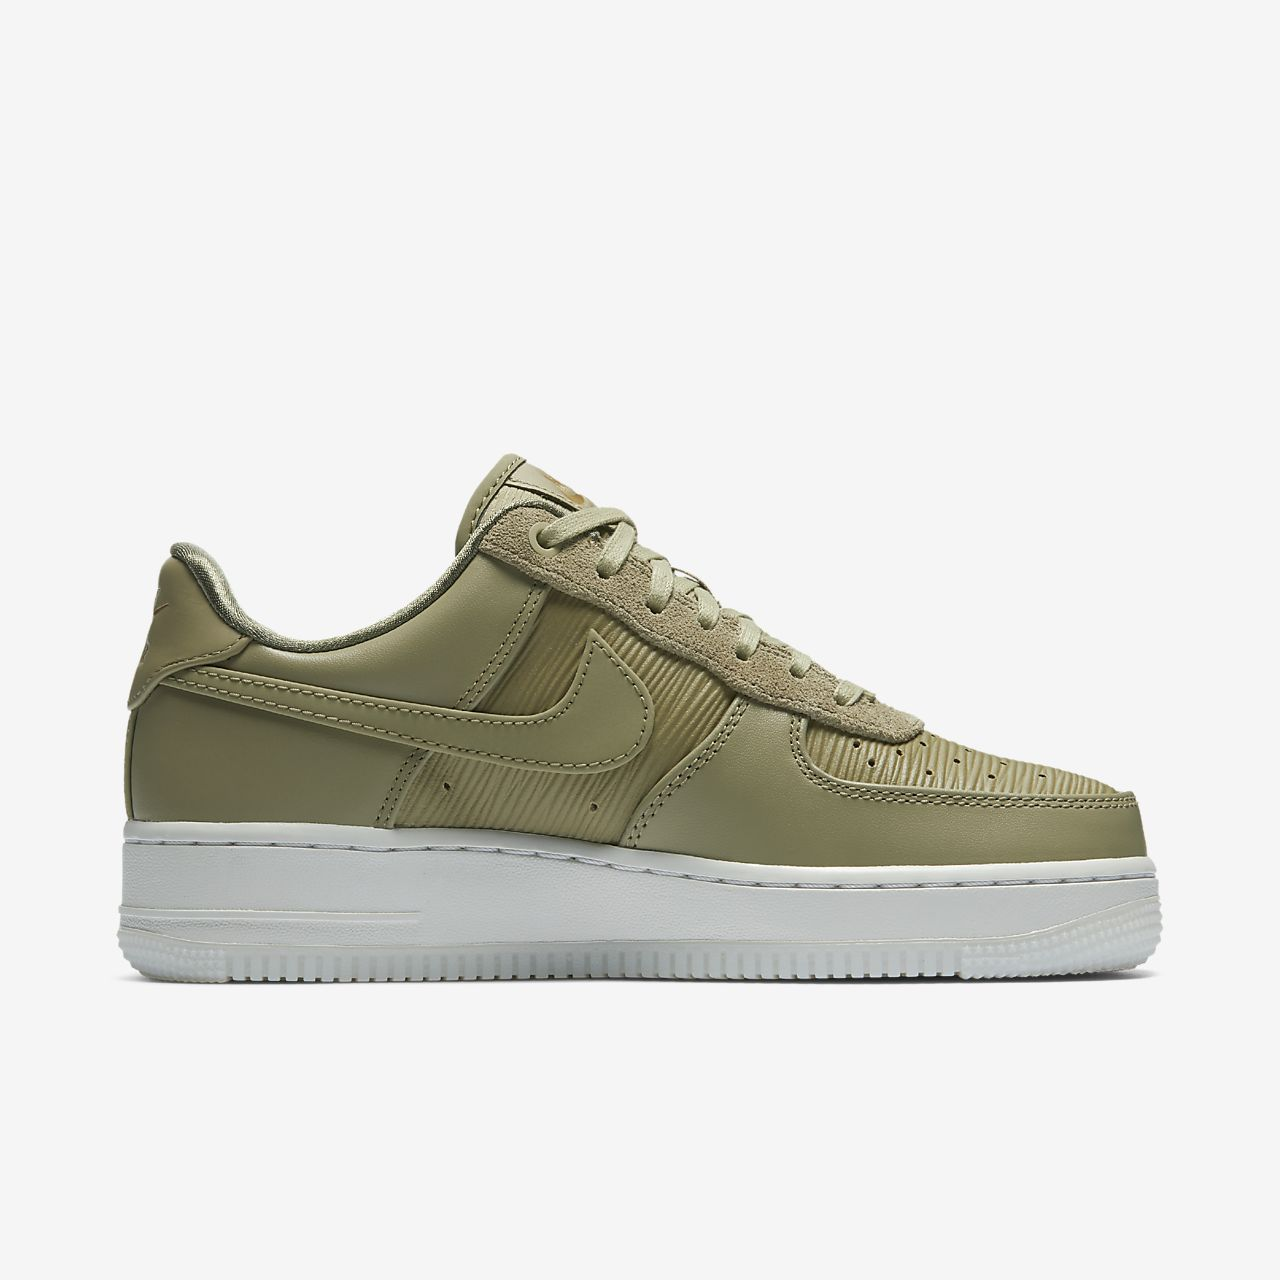 nike air force 1 womens 8.5 nz